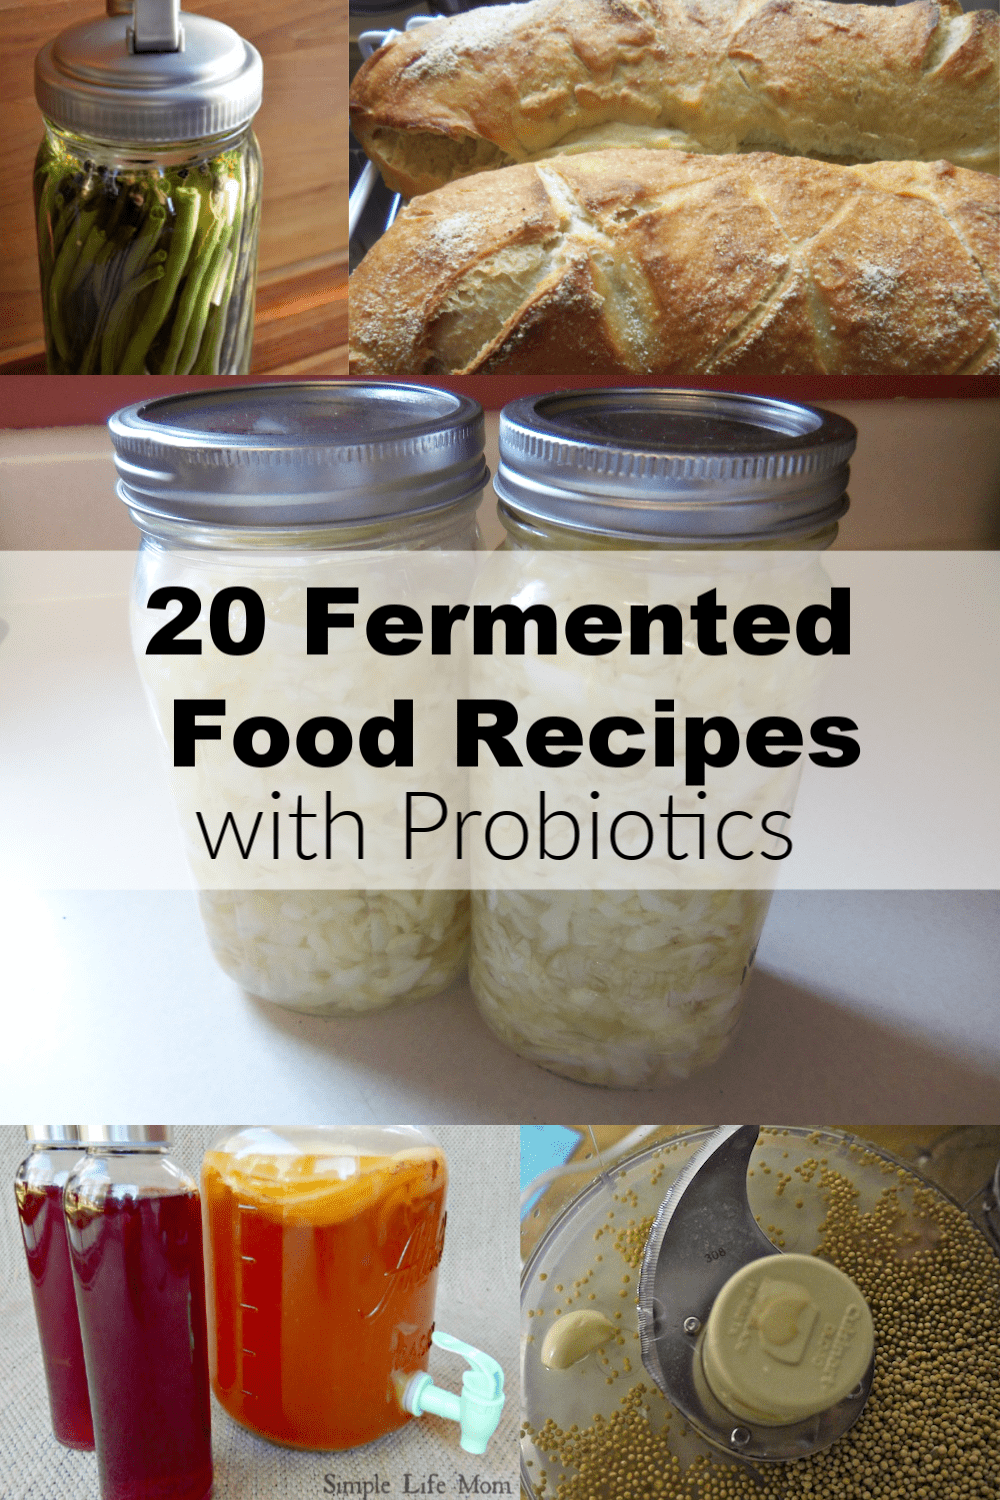 20 Fermented Food Recipes with Probiotics